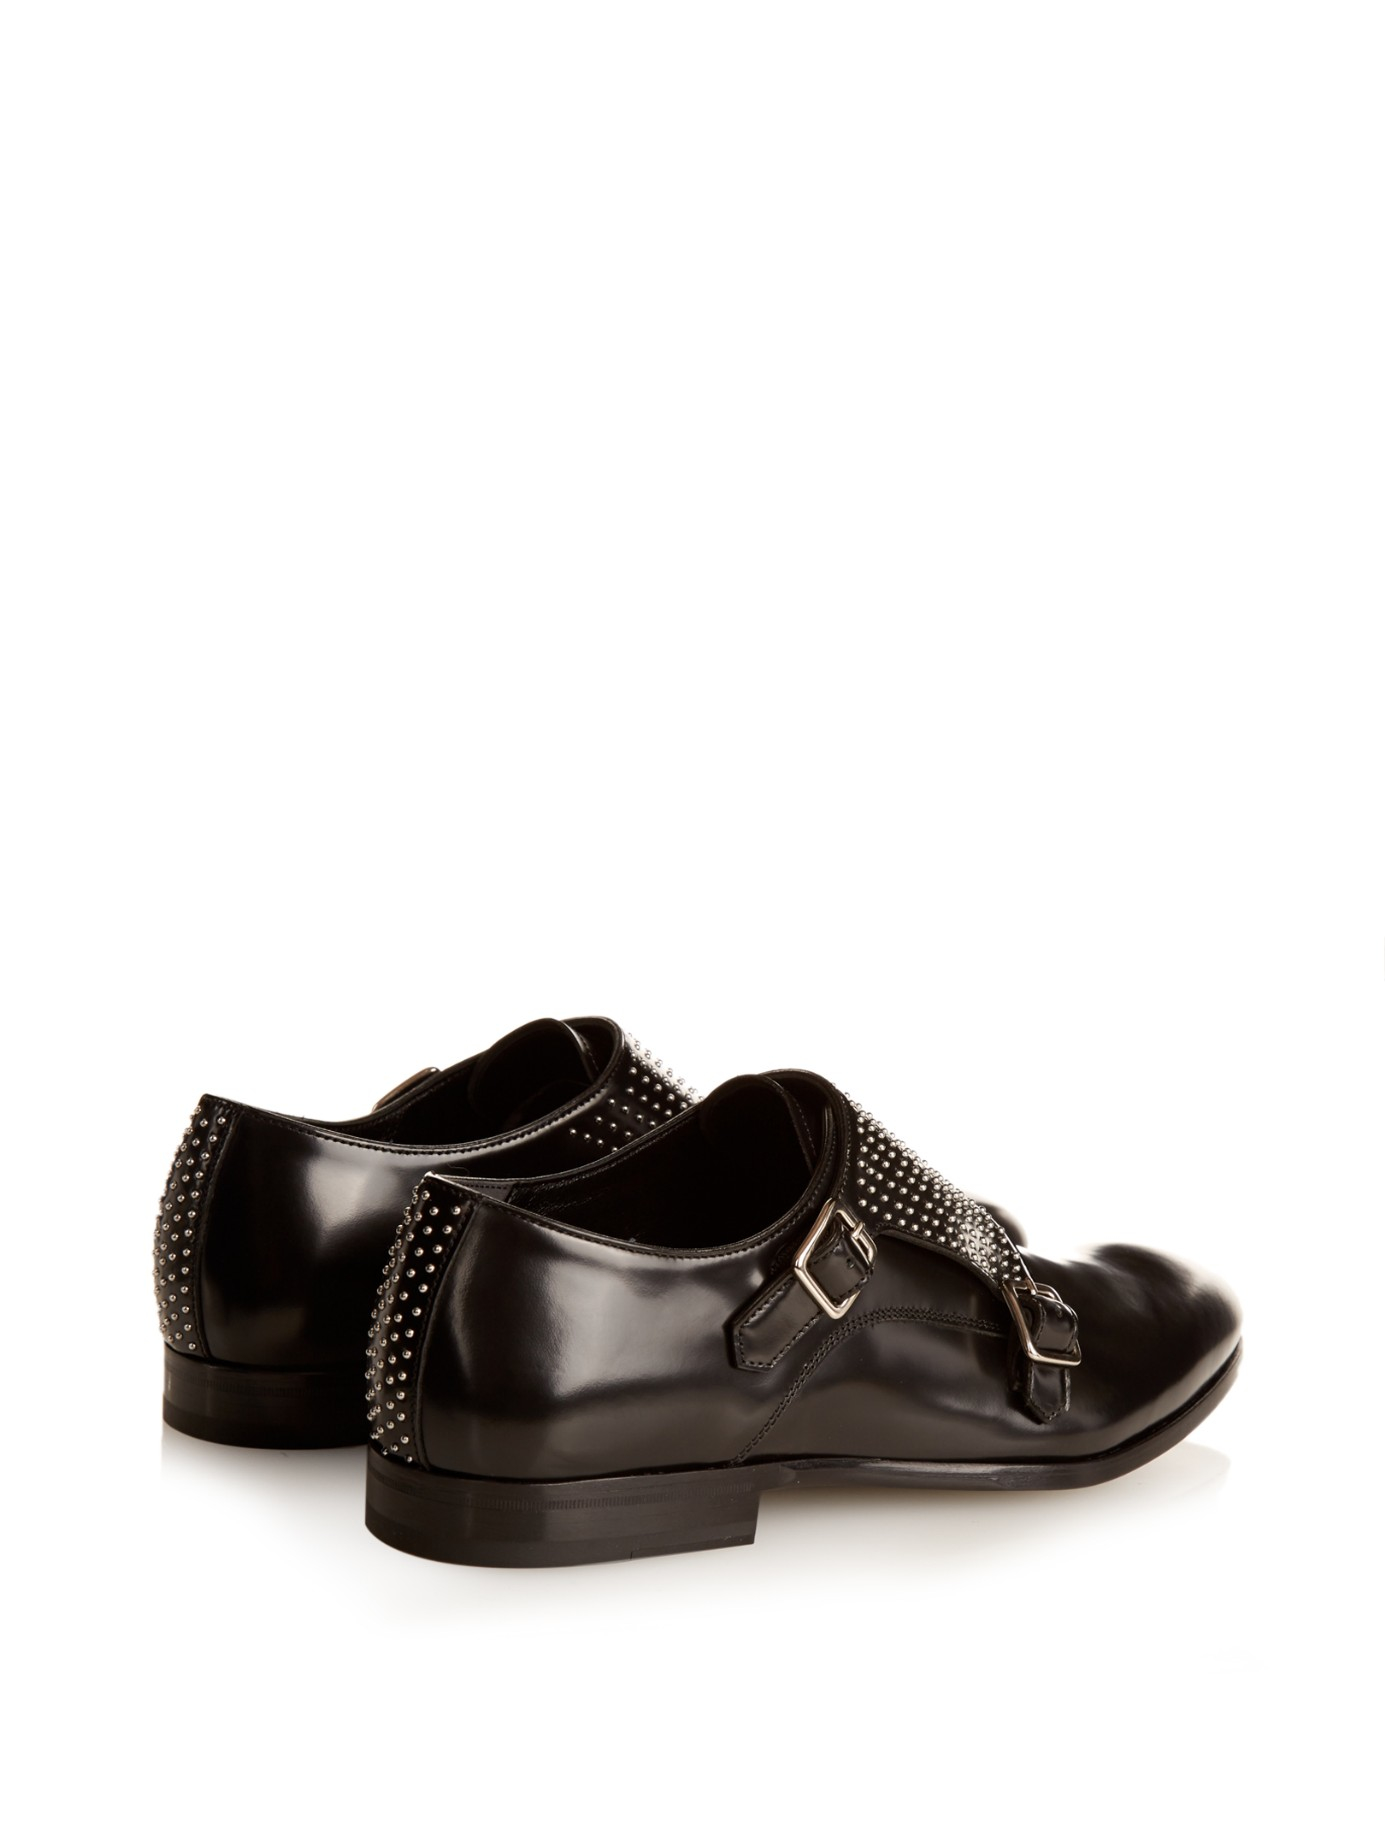 Monk-strap leather derby shoes Alexander McQueen wME8lgY